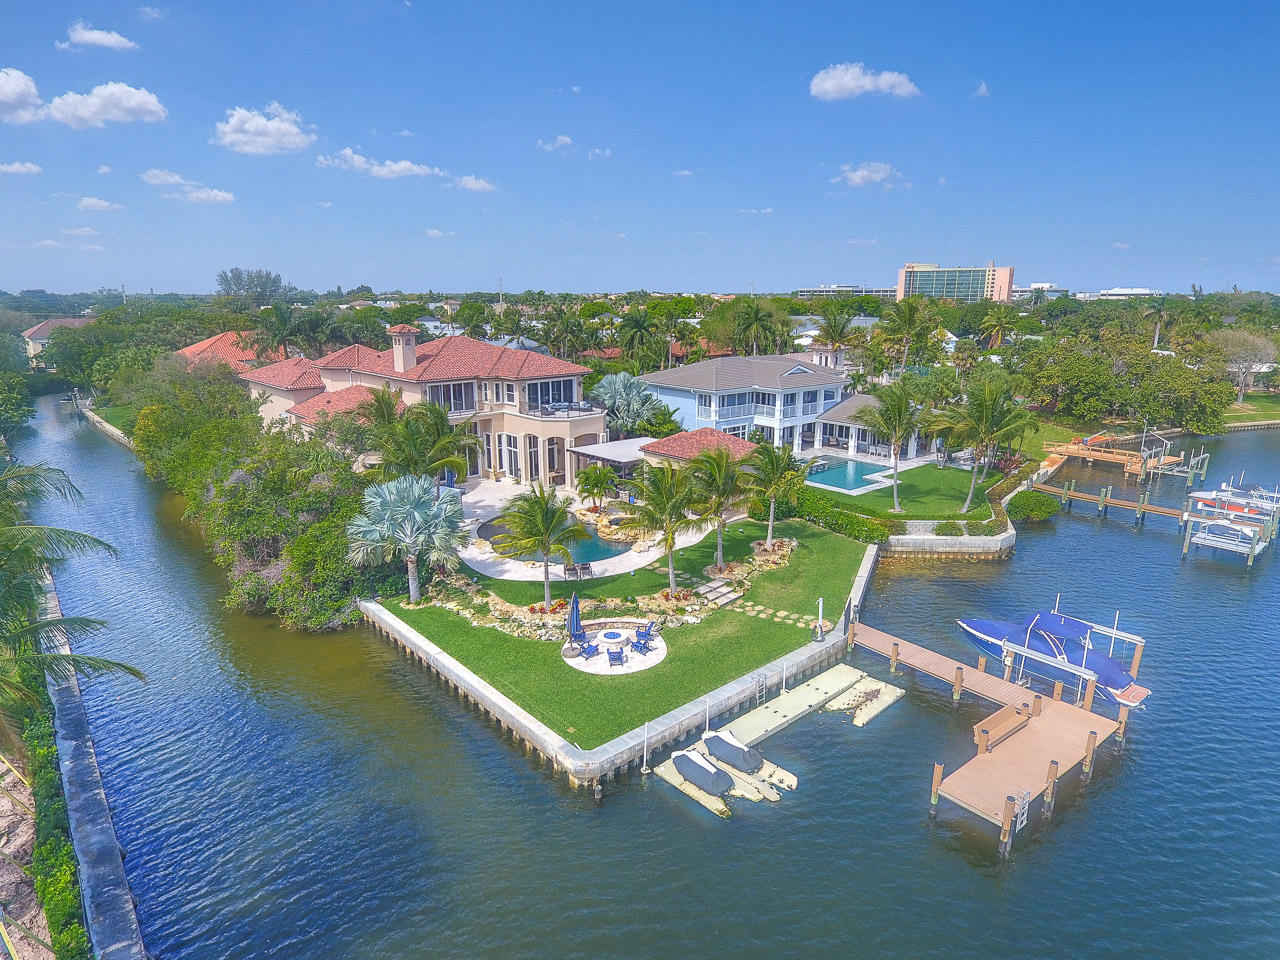 12014 Captains Landing(s), North Palm Beach, Florida 33408, 4 Bedrooms Bedrooms, ,6 BathroomsBathrooms,A,Single family,Captains,RX-10508781